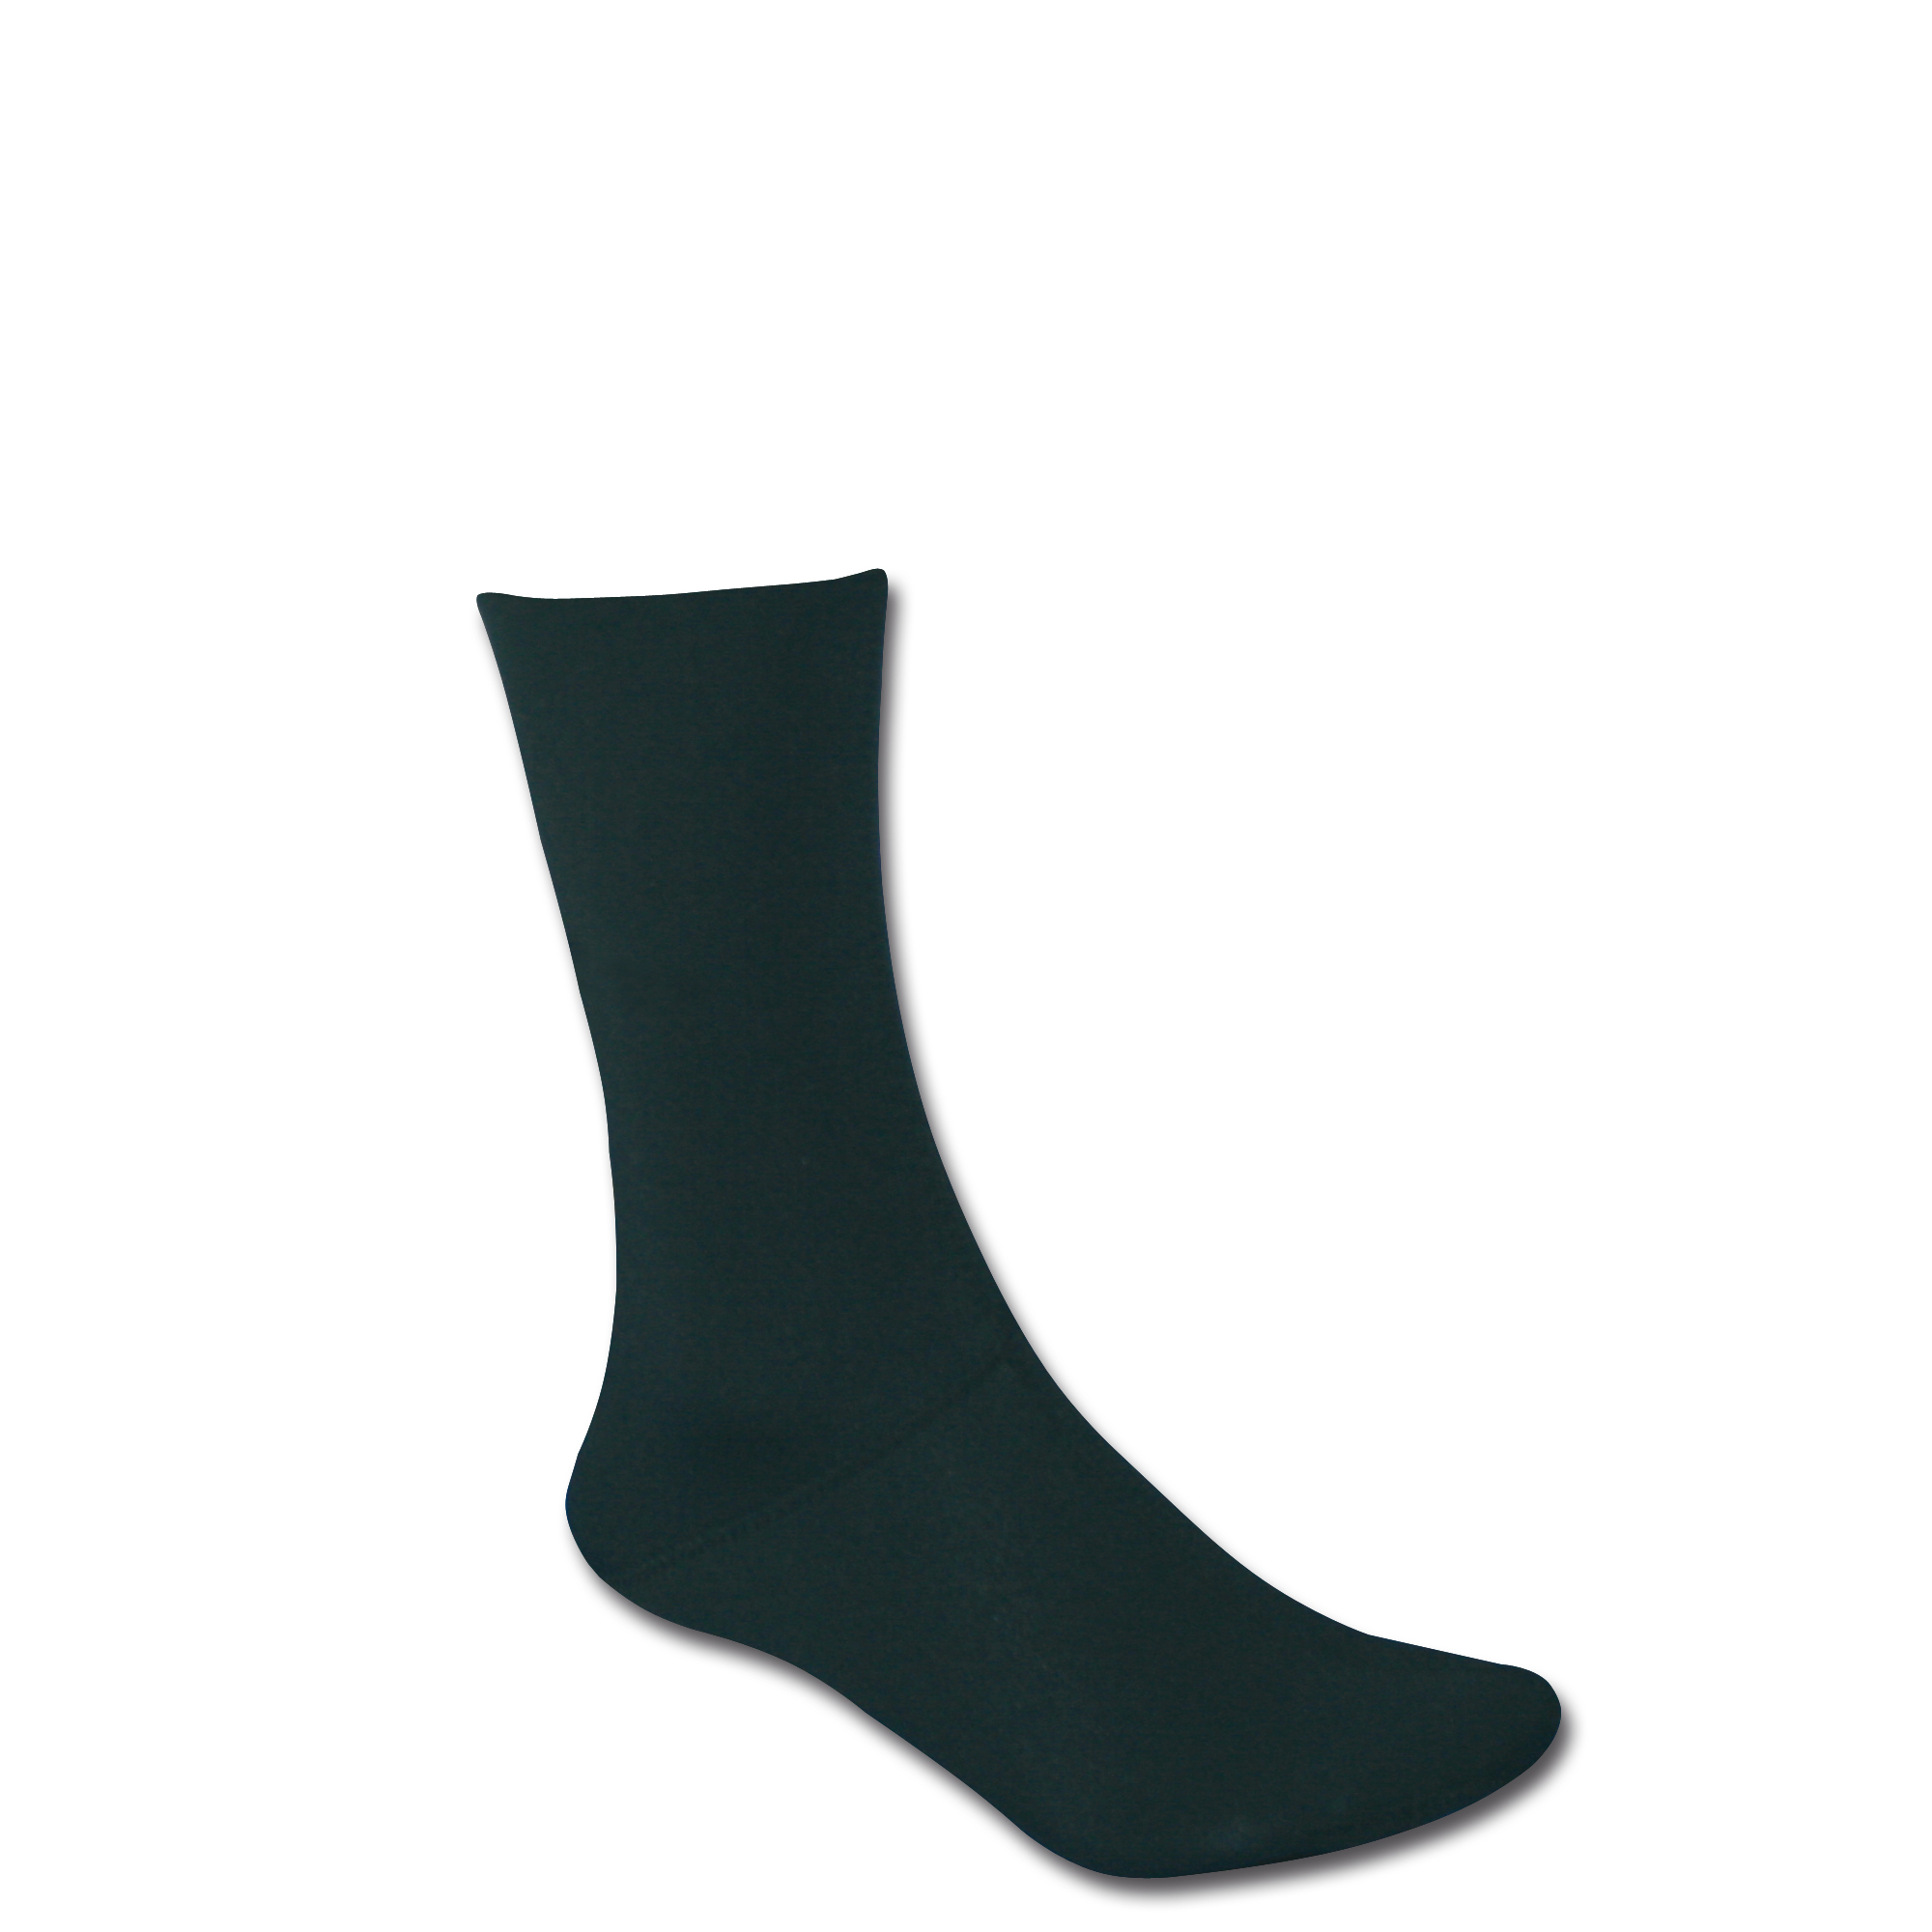 Gator Neopren Socks black